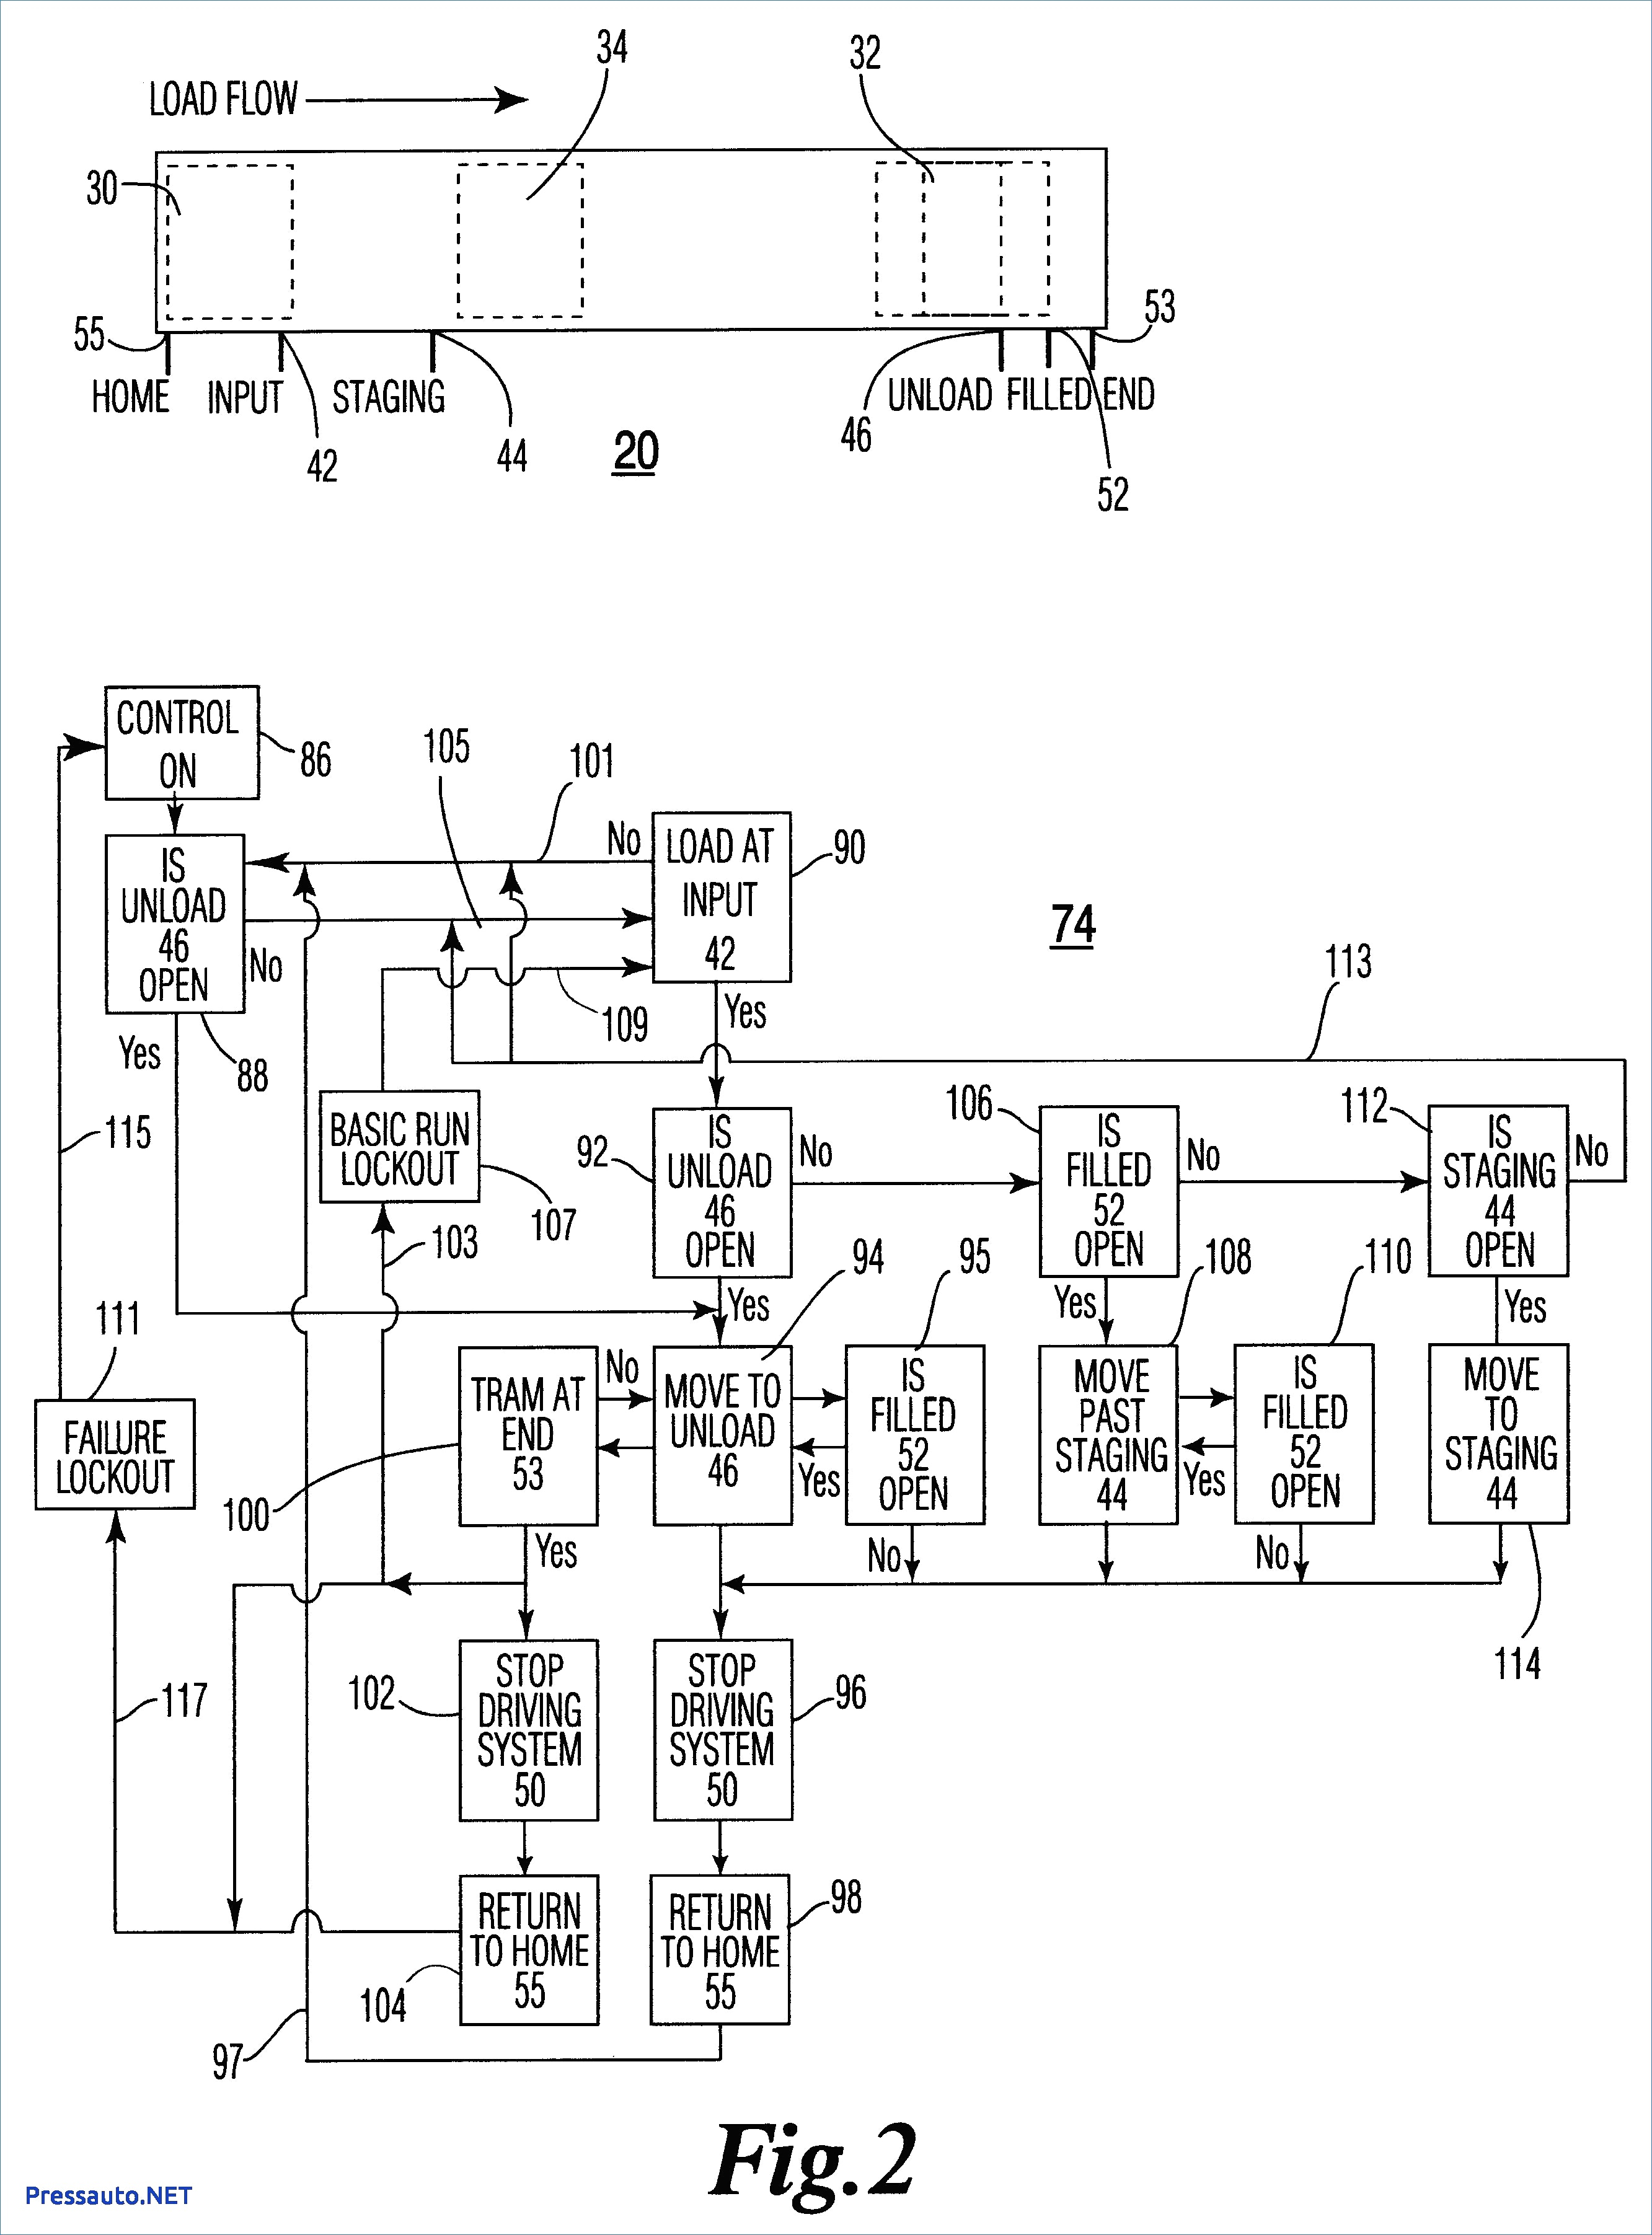 wye transformer wiring diagram free download